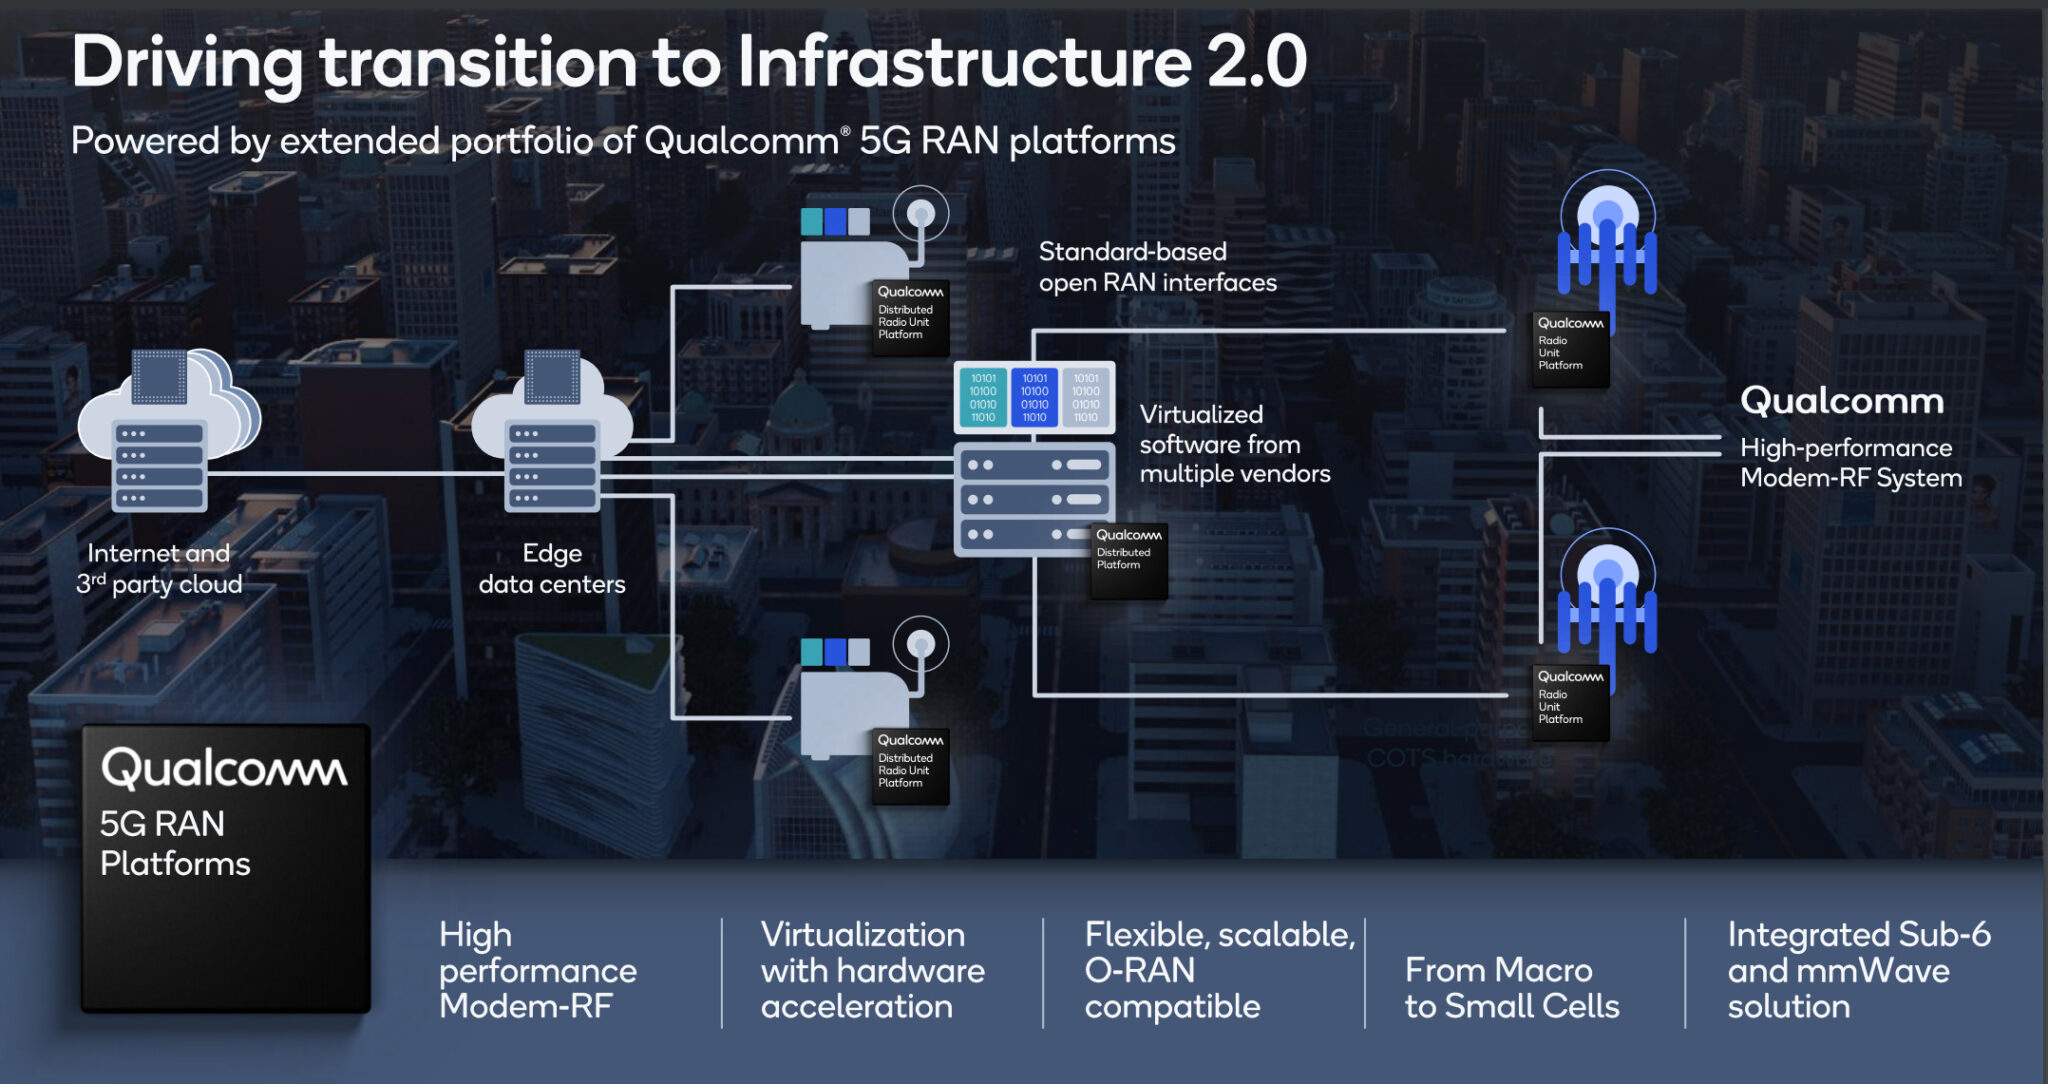 How Qualcomm sees its role in vRAN and Open RAN